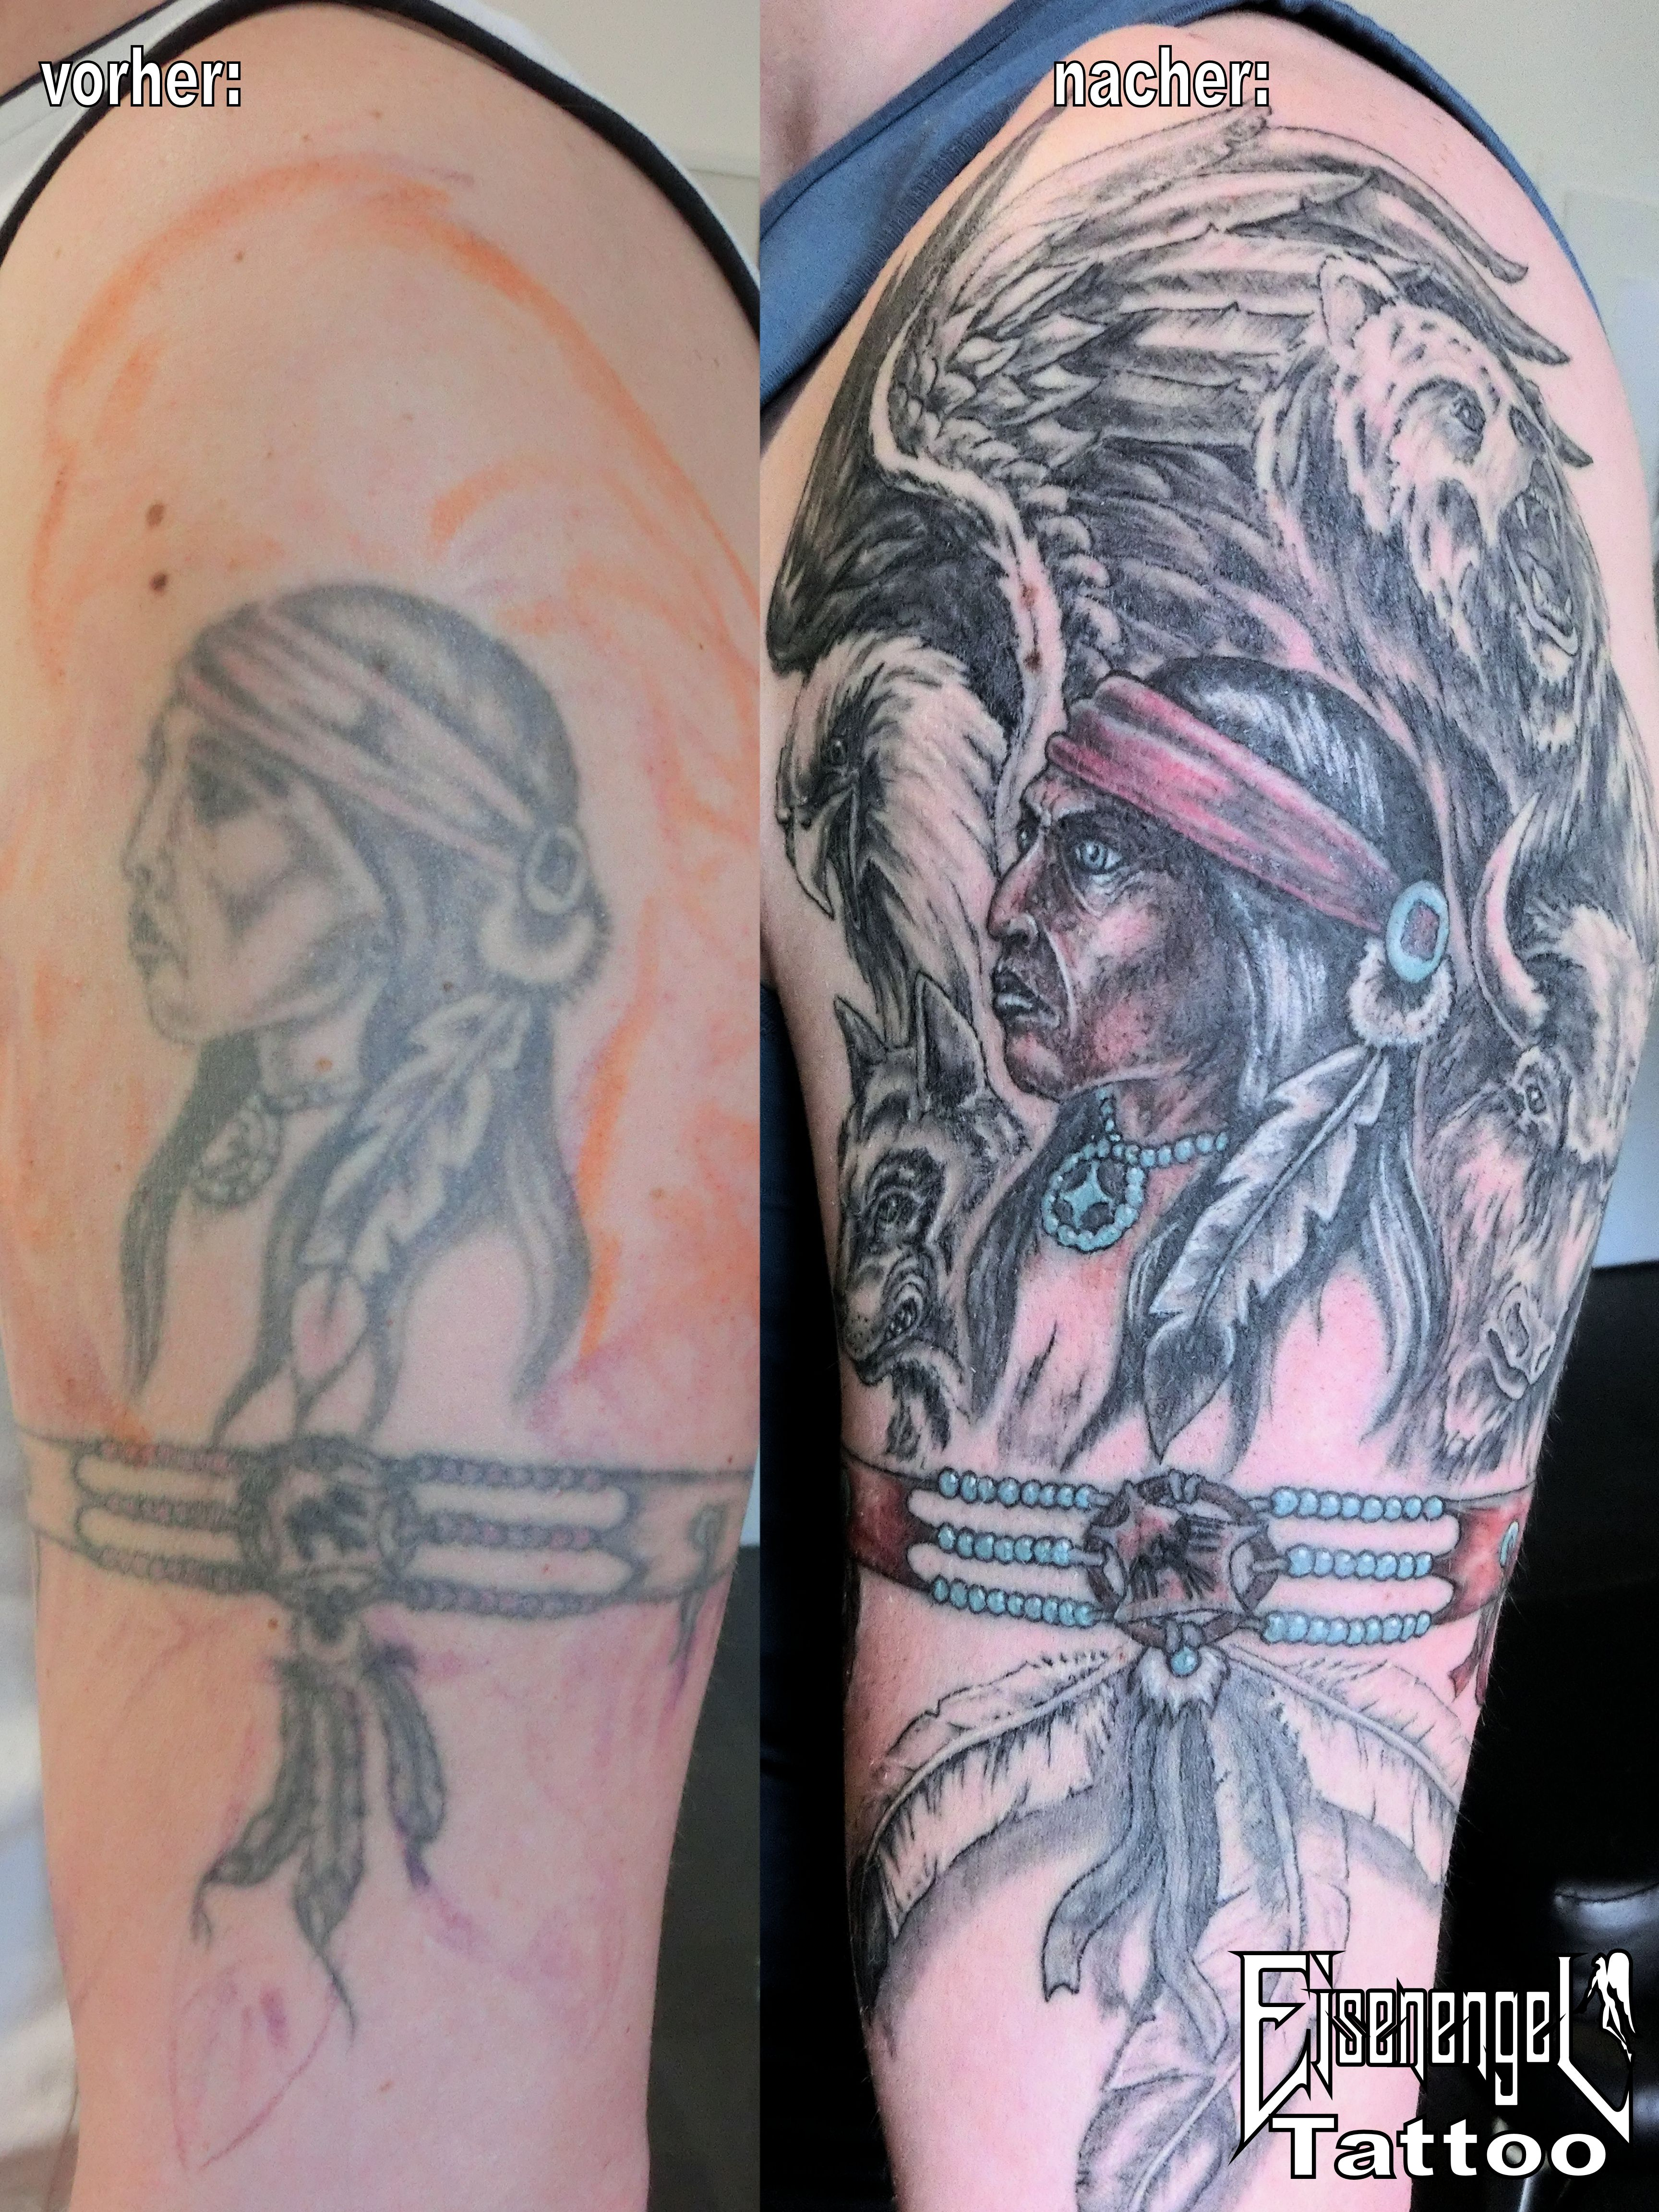 tattoo_coverup_indianer.jpg